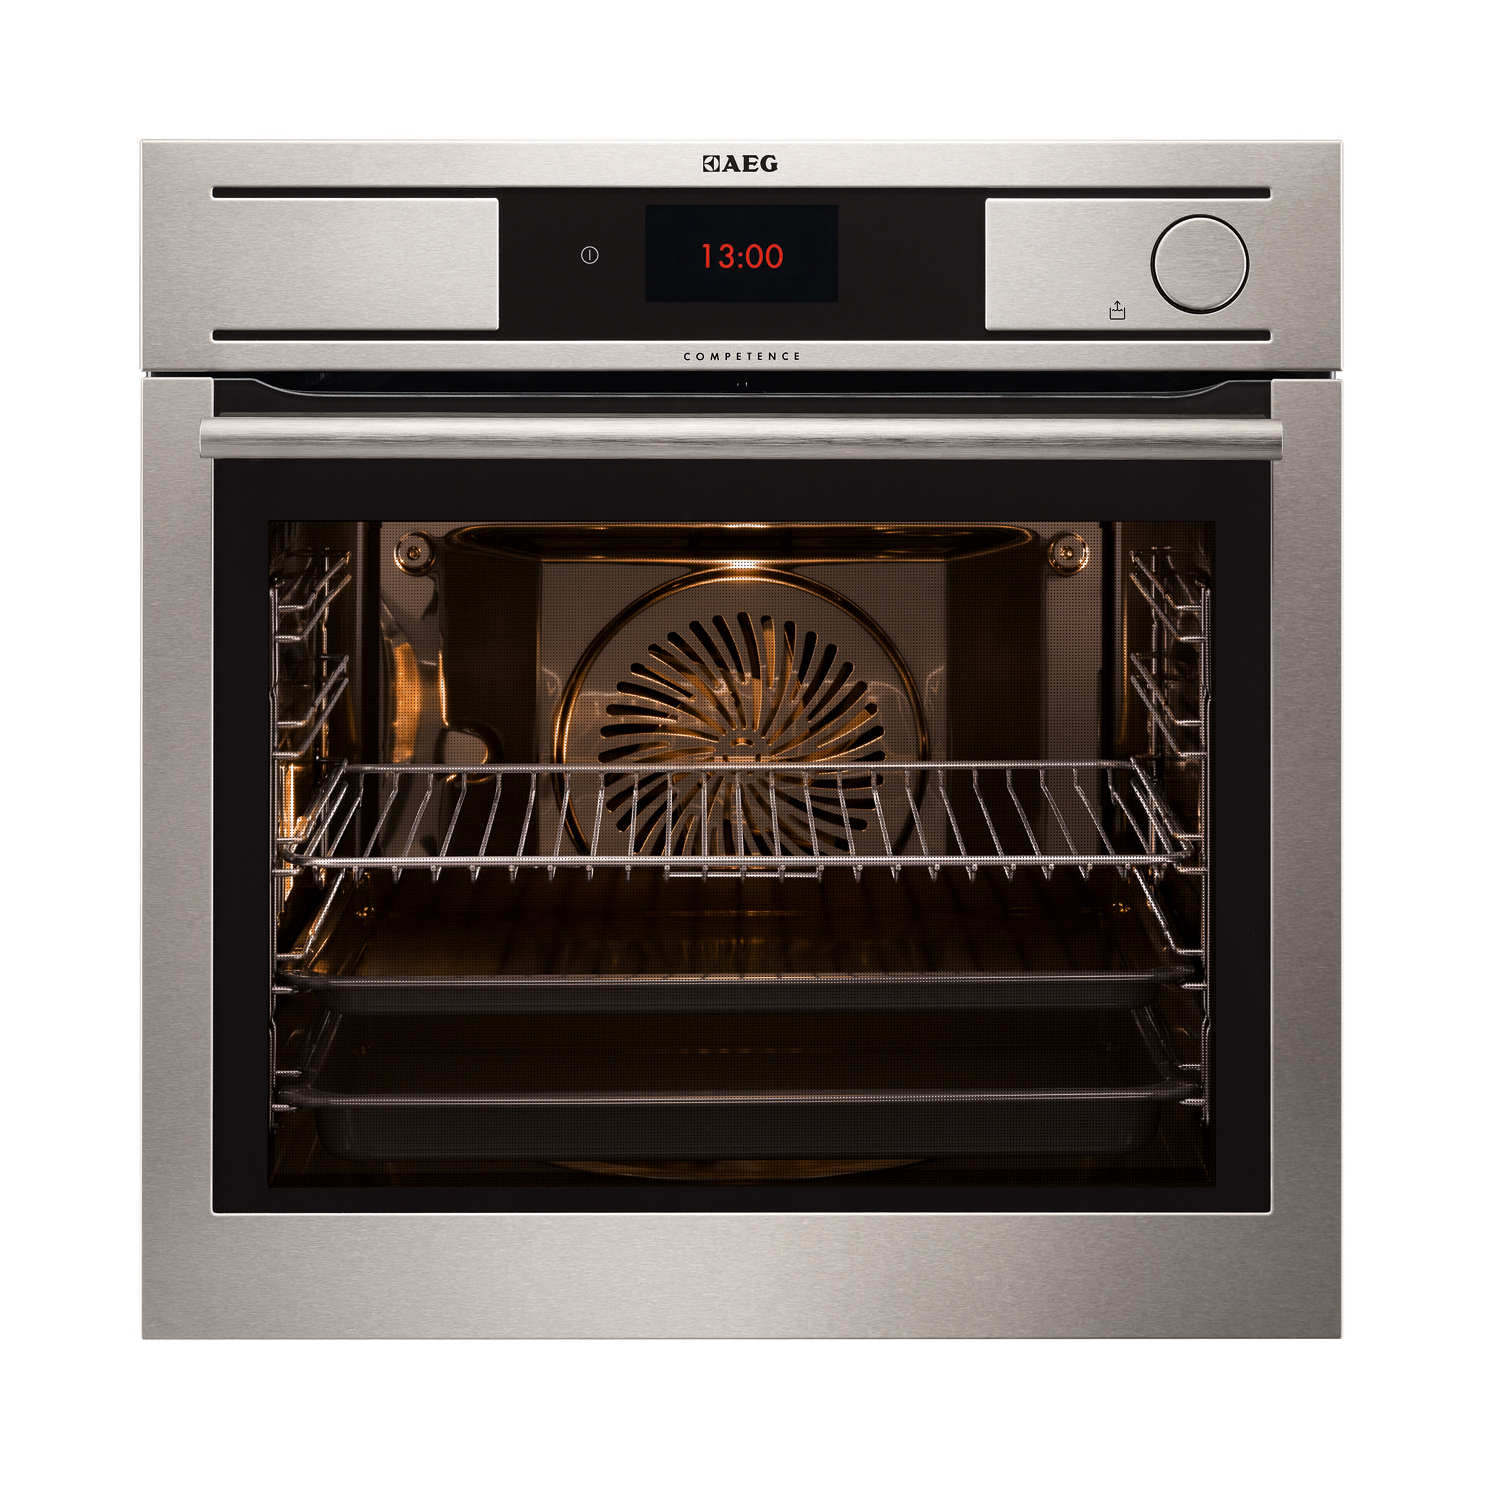 Blomberg beo9414x single built in electric oven